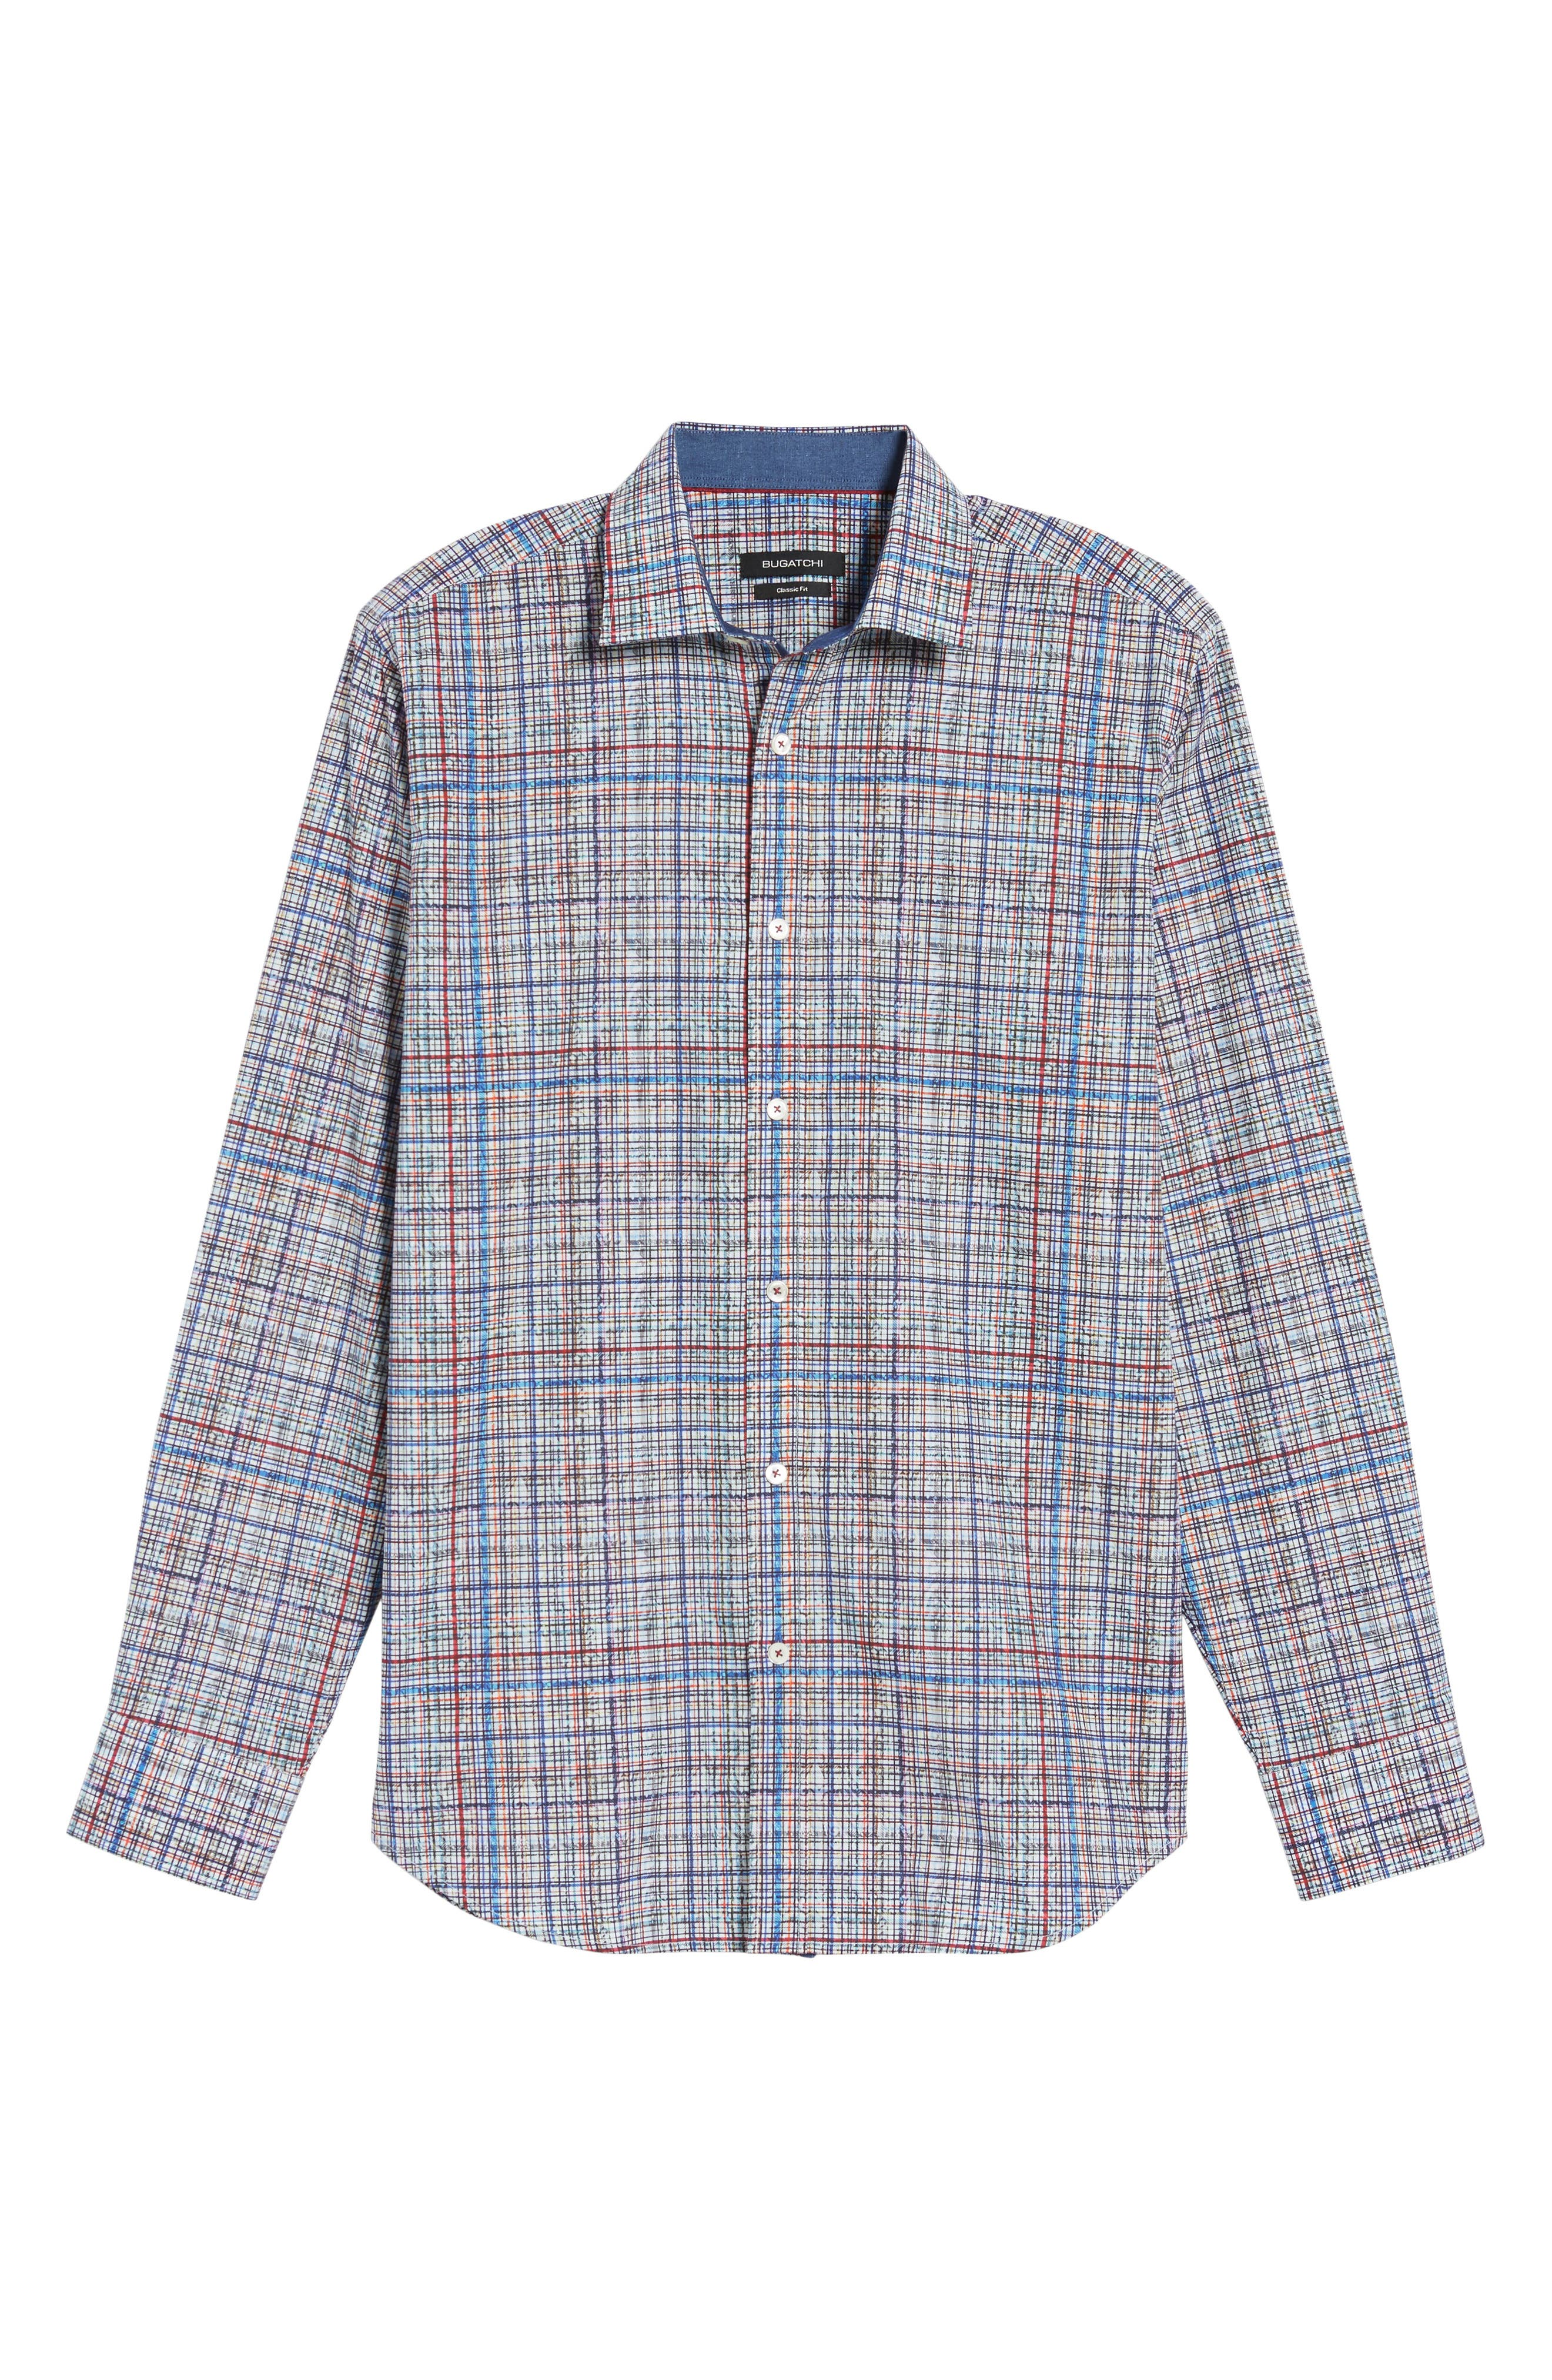 Classic Fit Abstract Plaid Sport Shirt,                             Alternate thumbnail 6, color,                             Candy